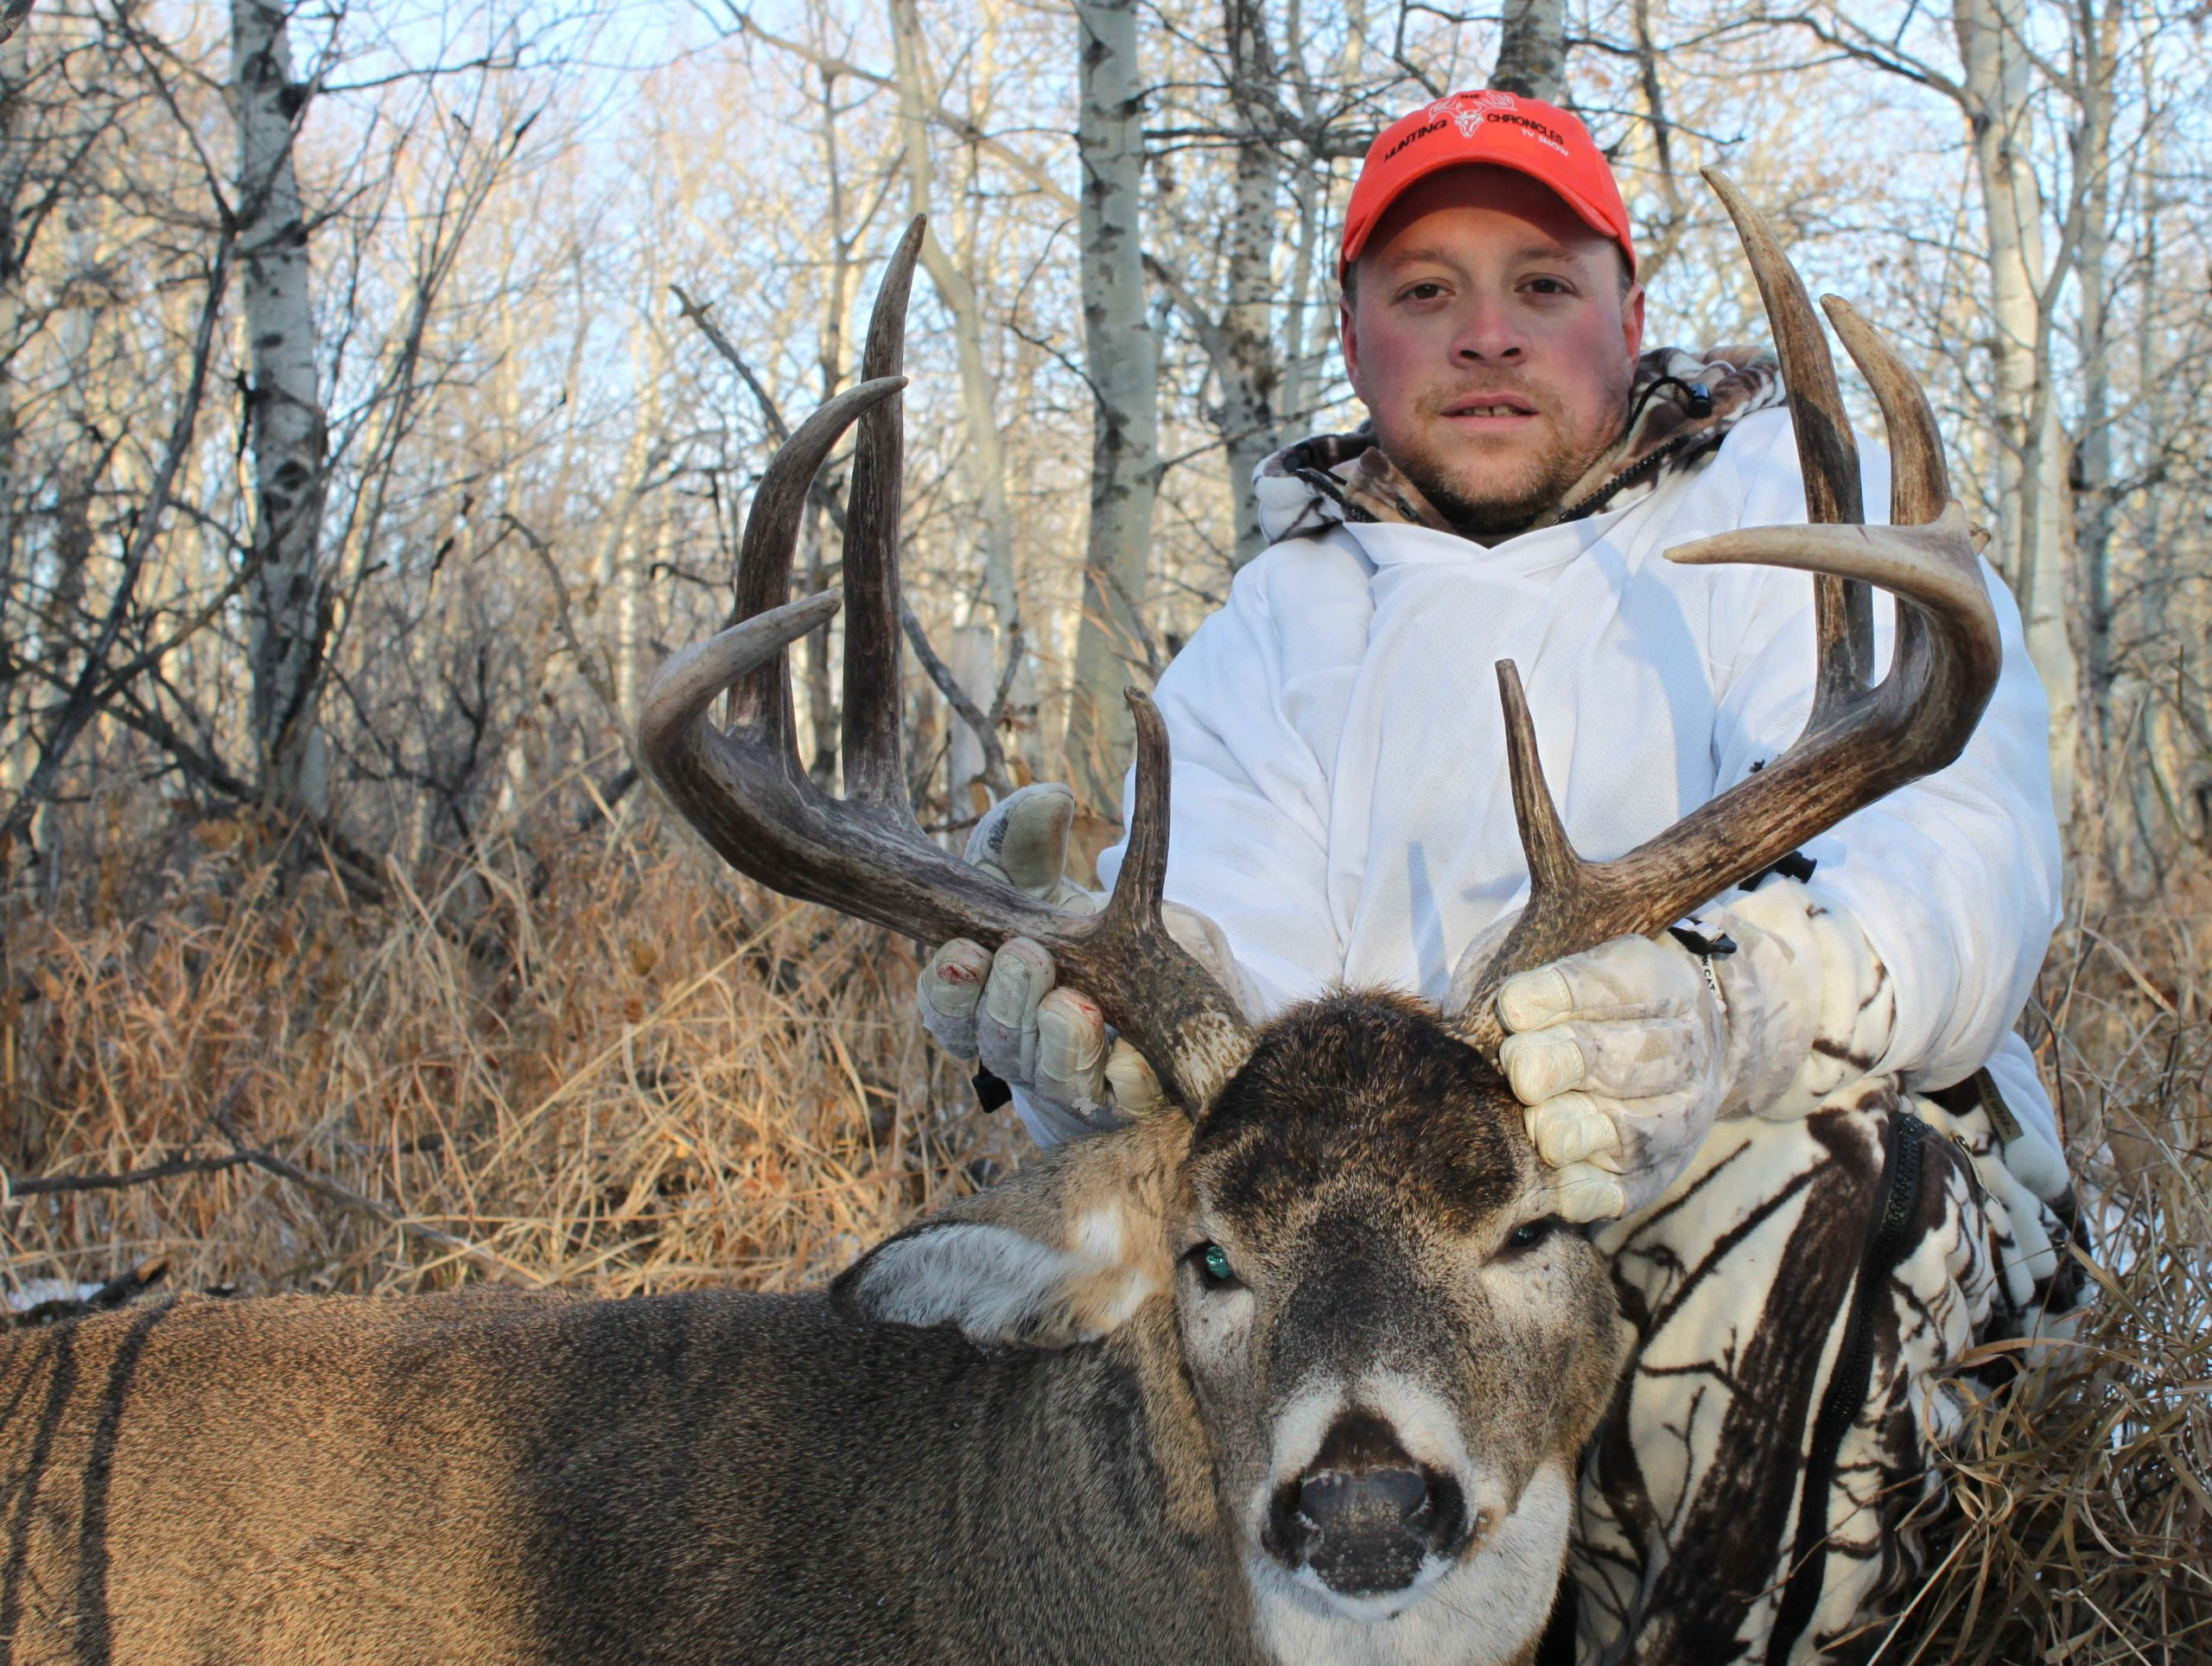 Alberta TV personality handed fine and suspension for illegal hunting in Saskatchewan